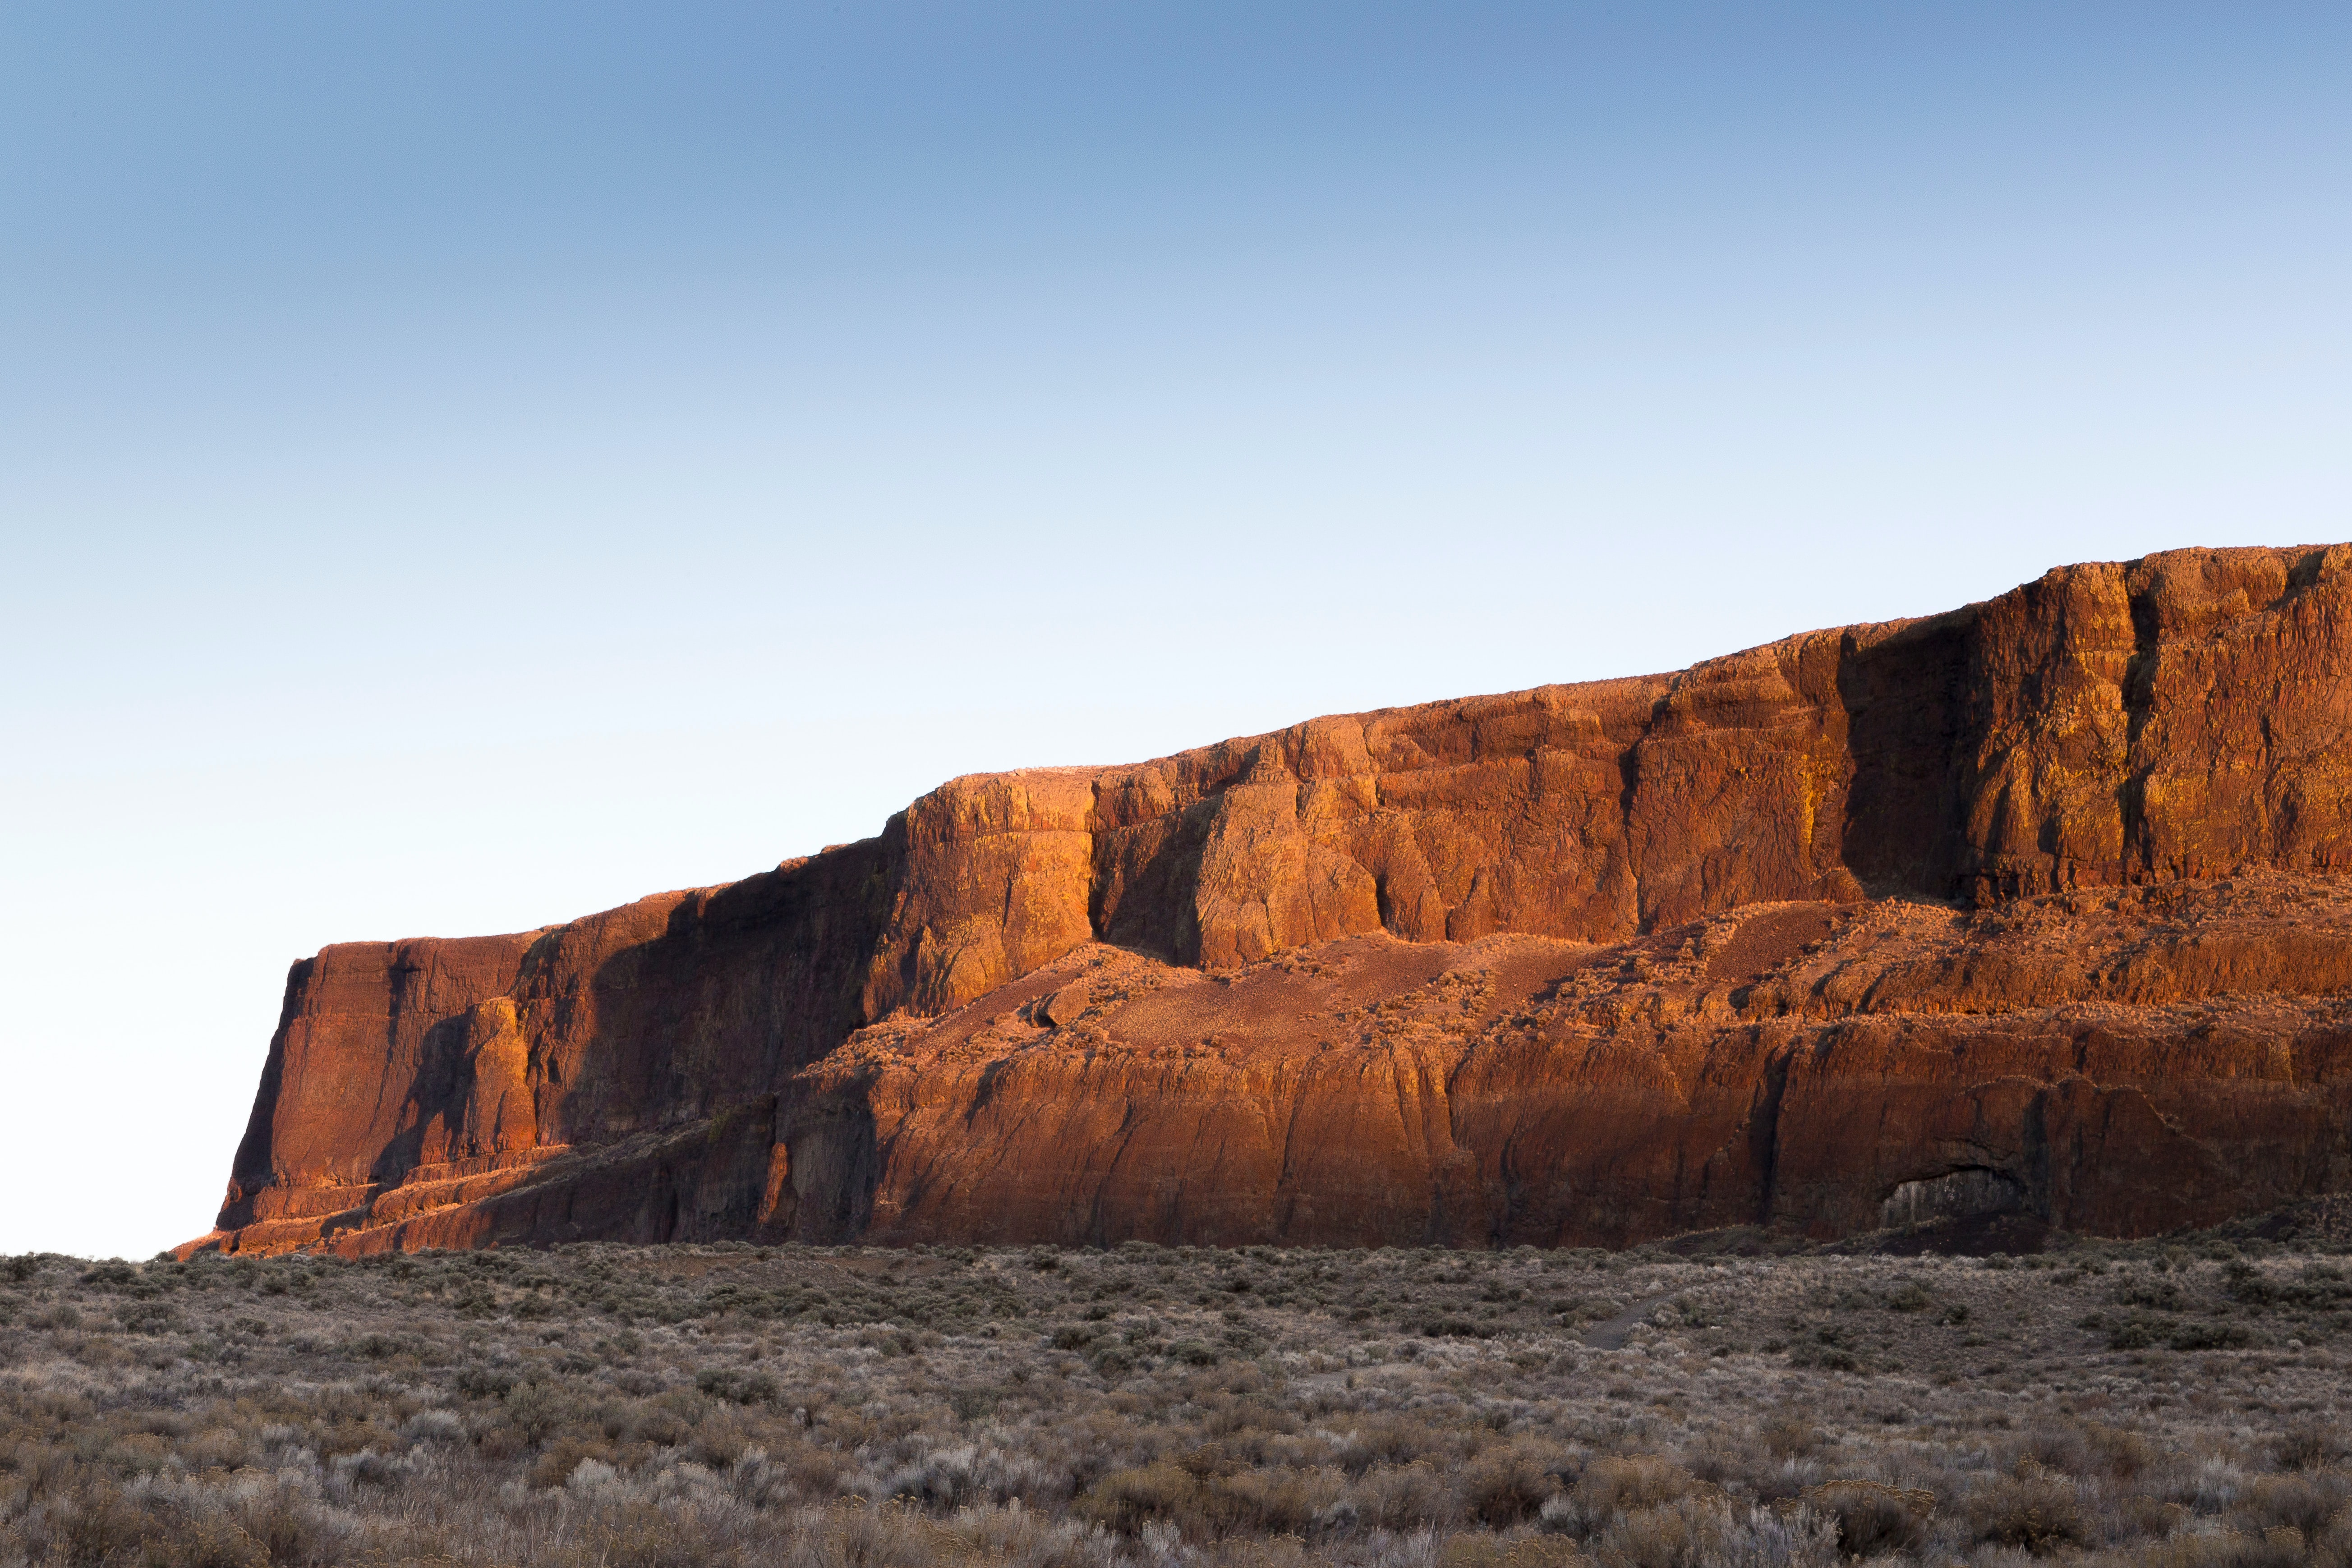 A large sandstone formation in the middle of arid grassland